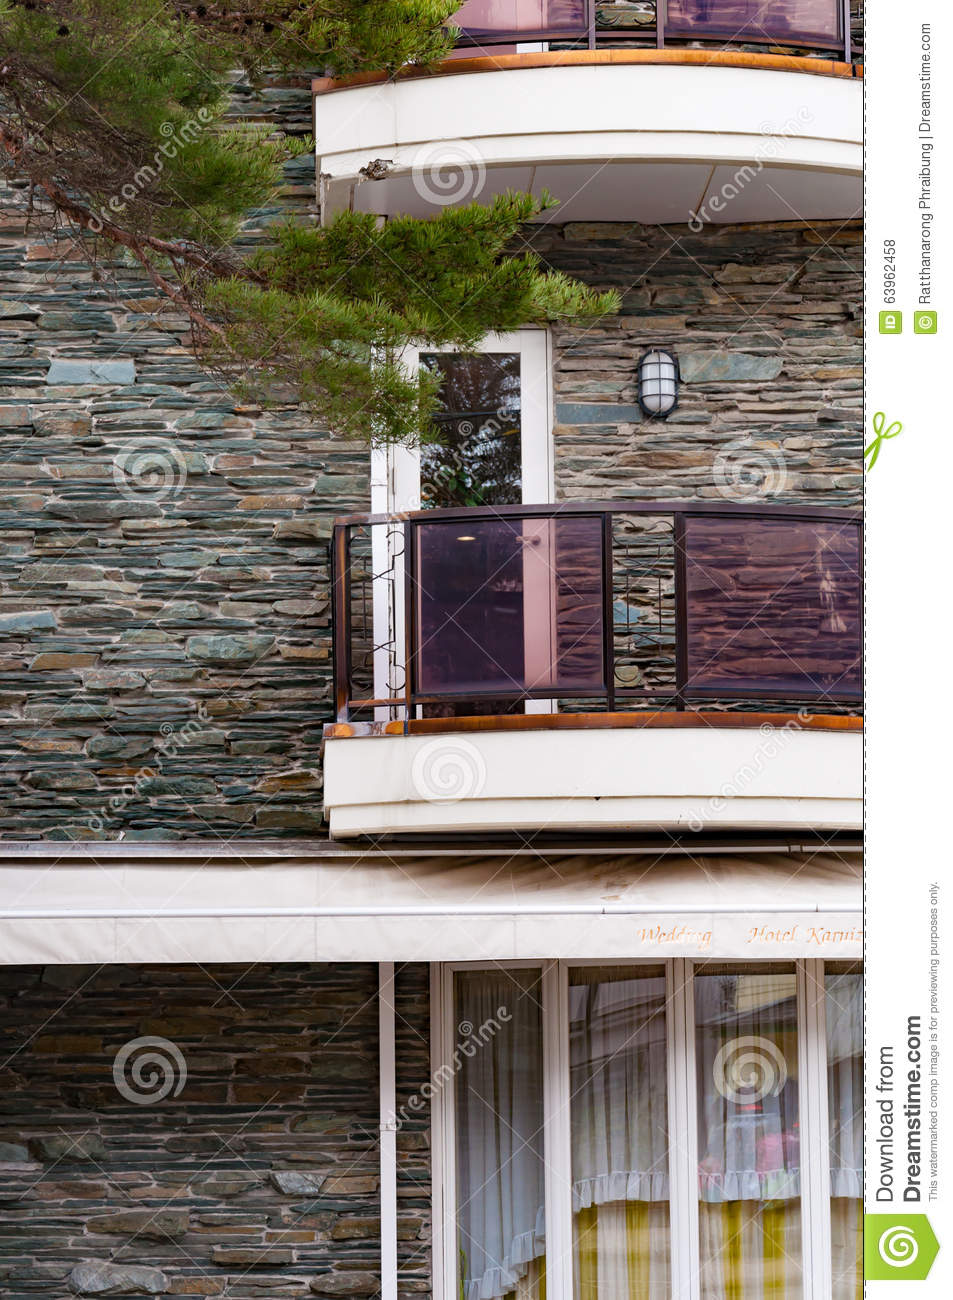 Balcony In Marble Wall : Balcony in modern building with stone wall stock photo